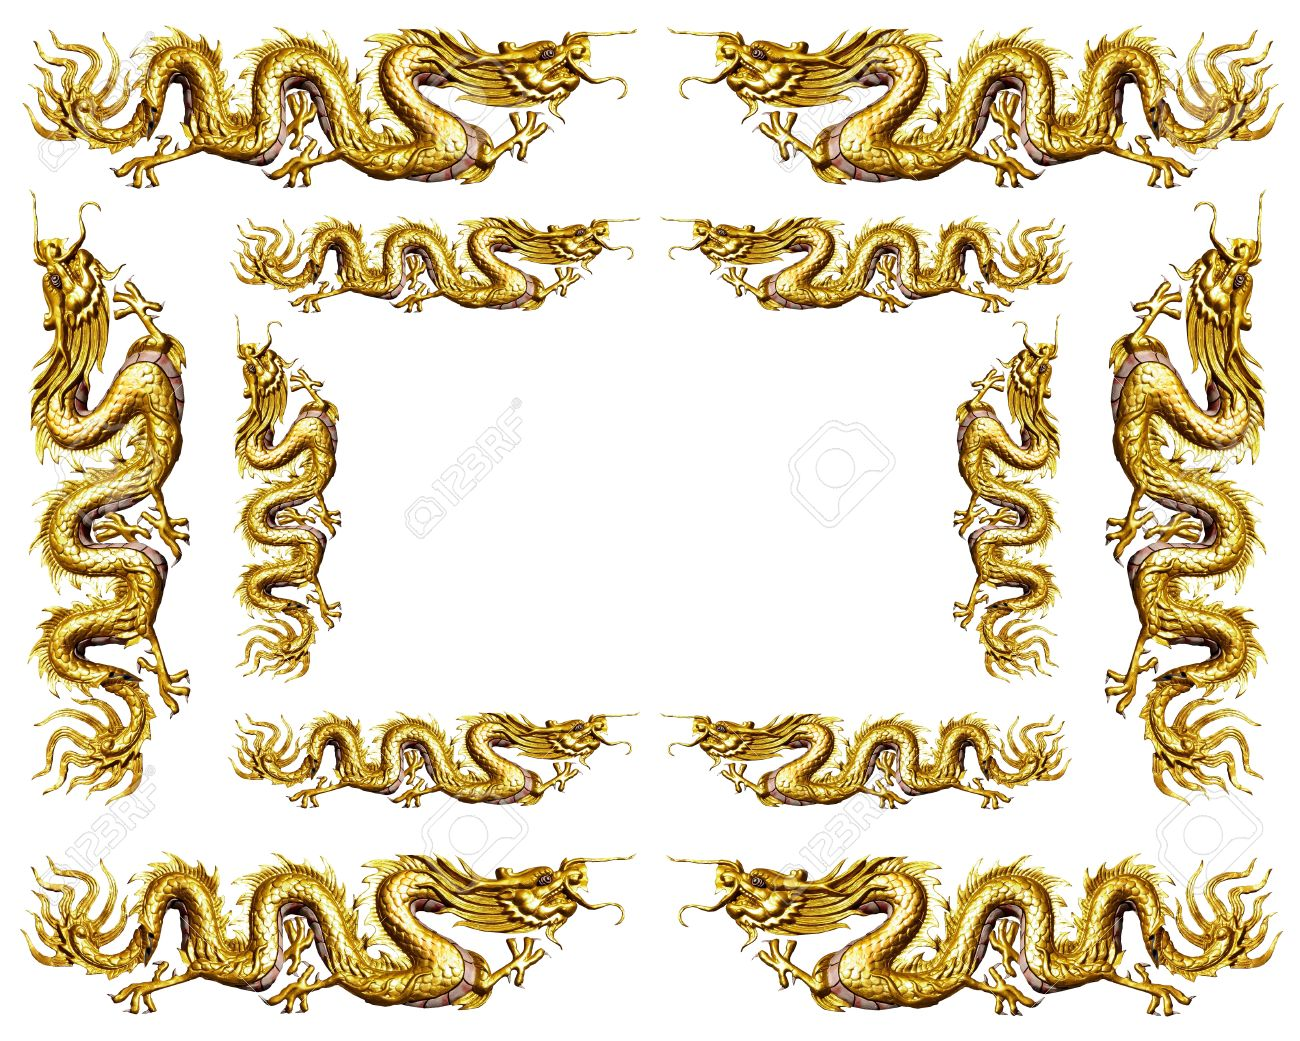 Golden Dragon Frame On White Background Stock Photo, Picture And ...